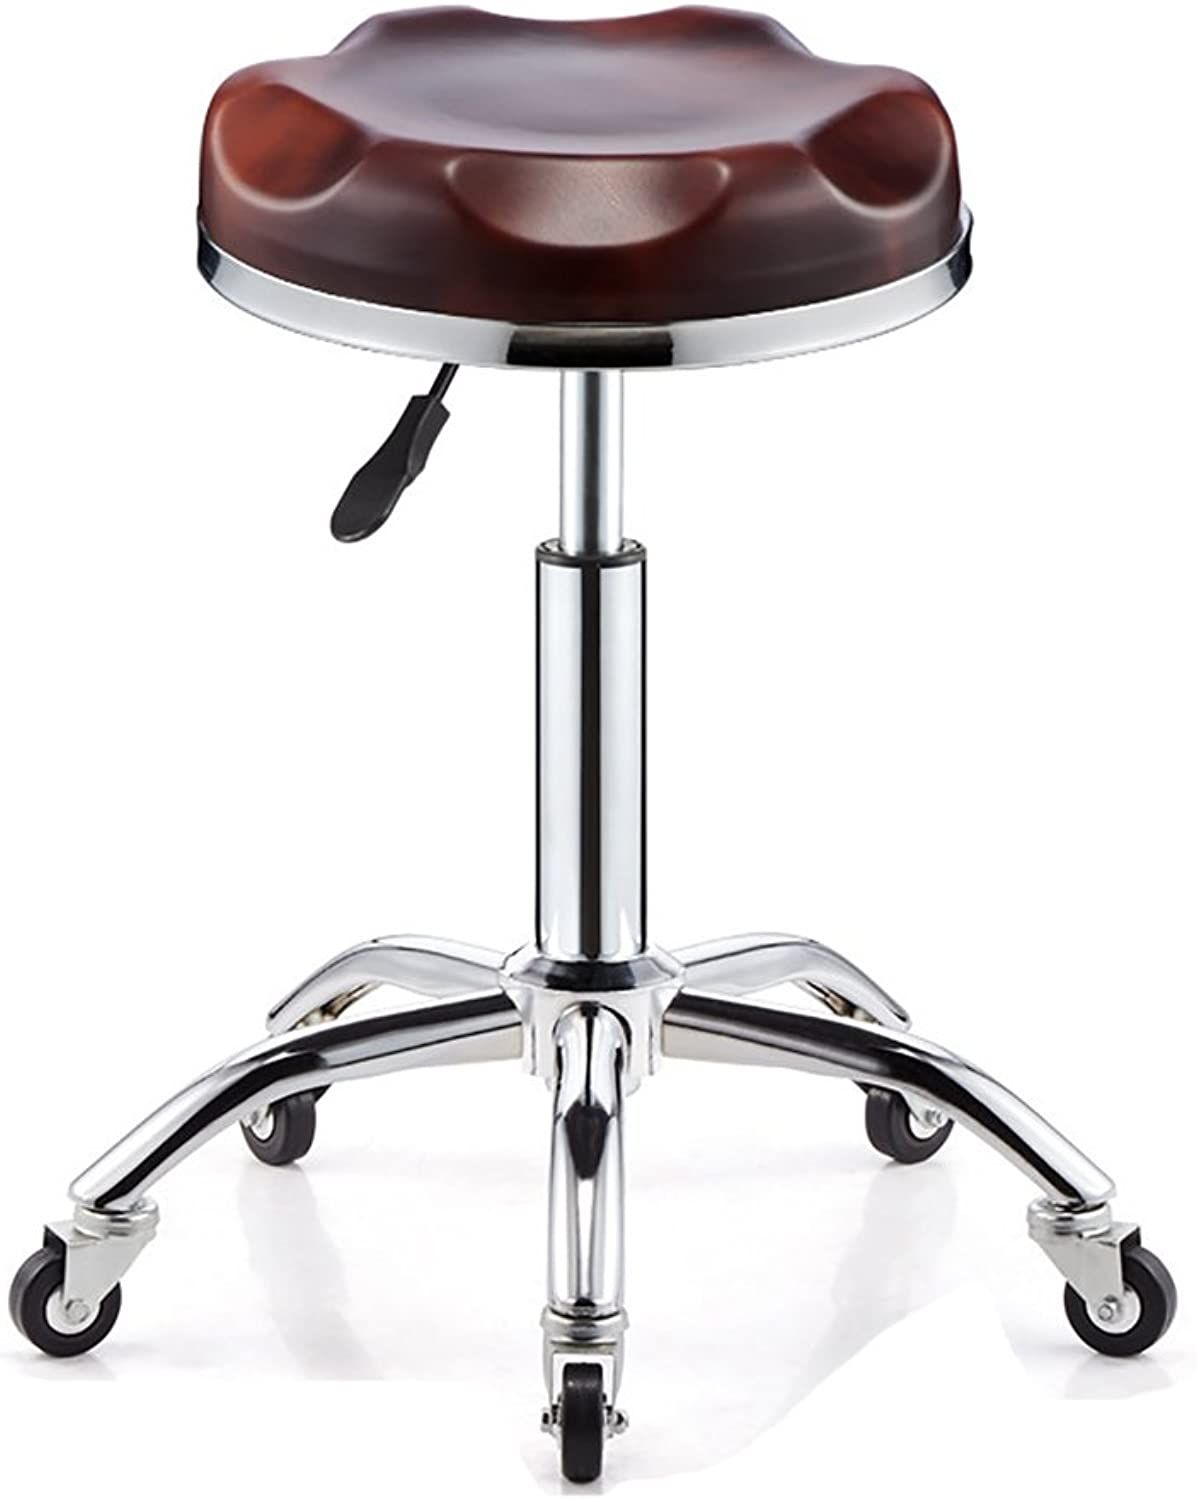 Bar chair Soft Bar Stools with Chromed Framework,360 Degree redary Chairs,Explosion-Proof (color   5, Size   32cm)